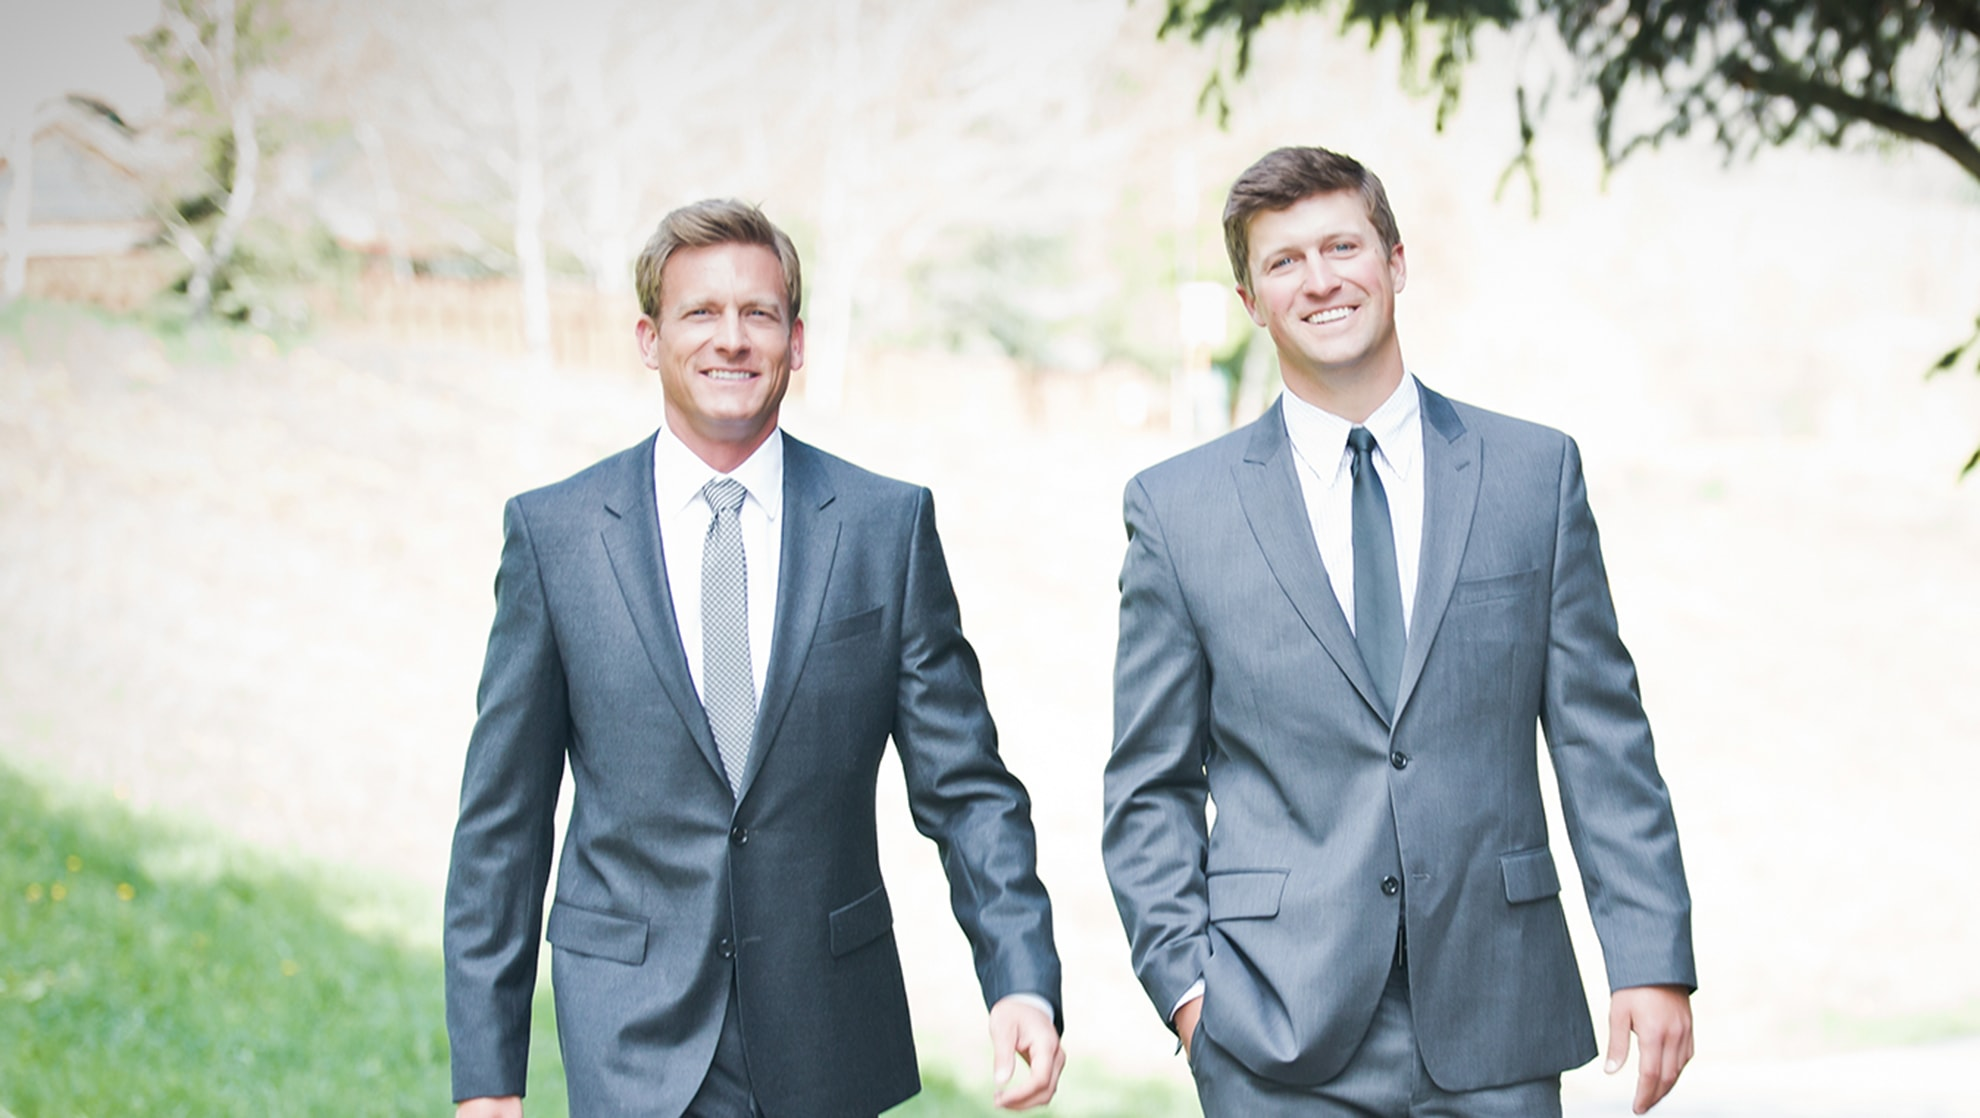 Dr. Haerter and Dr. Hawn are part of the Vail Dentistry team.